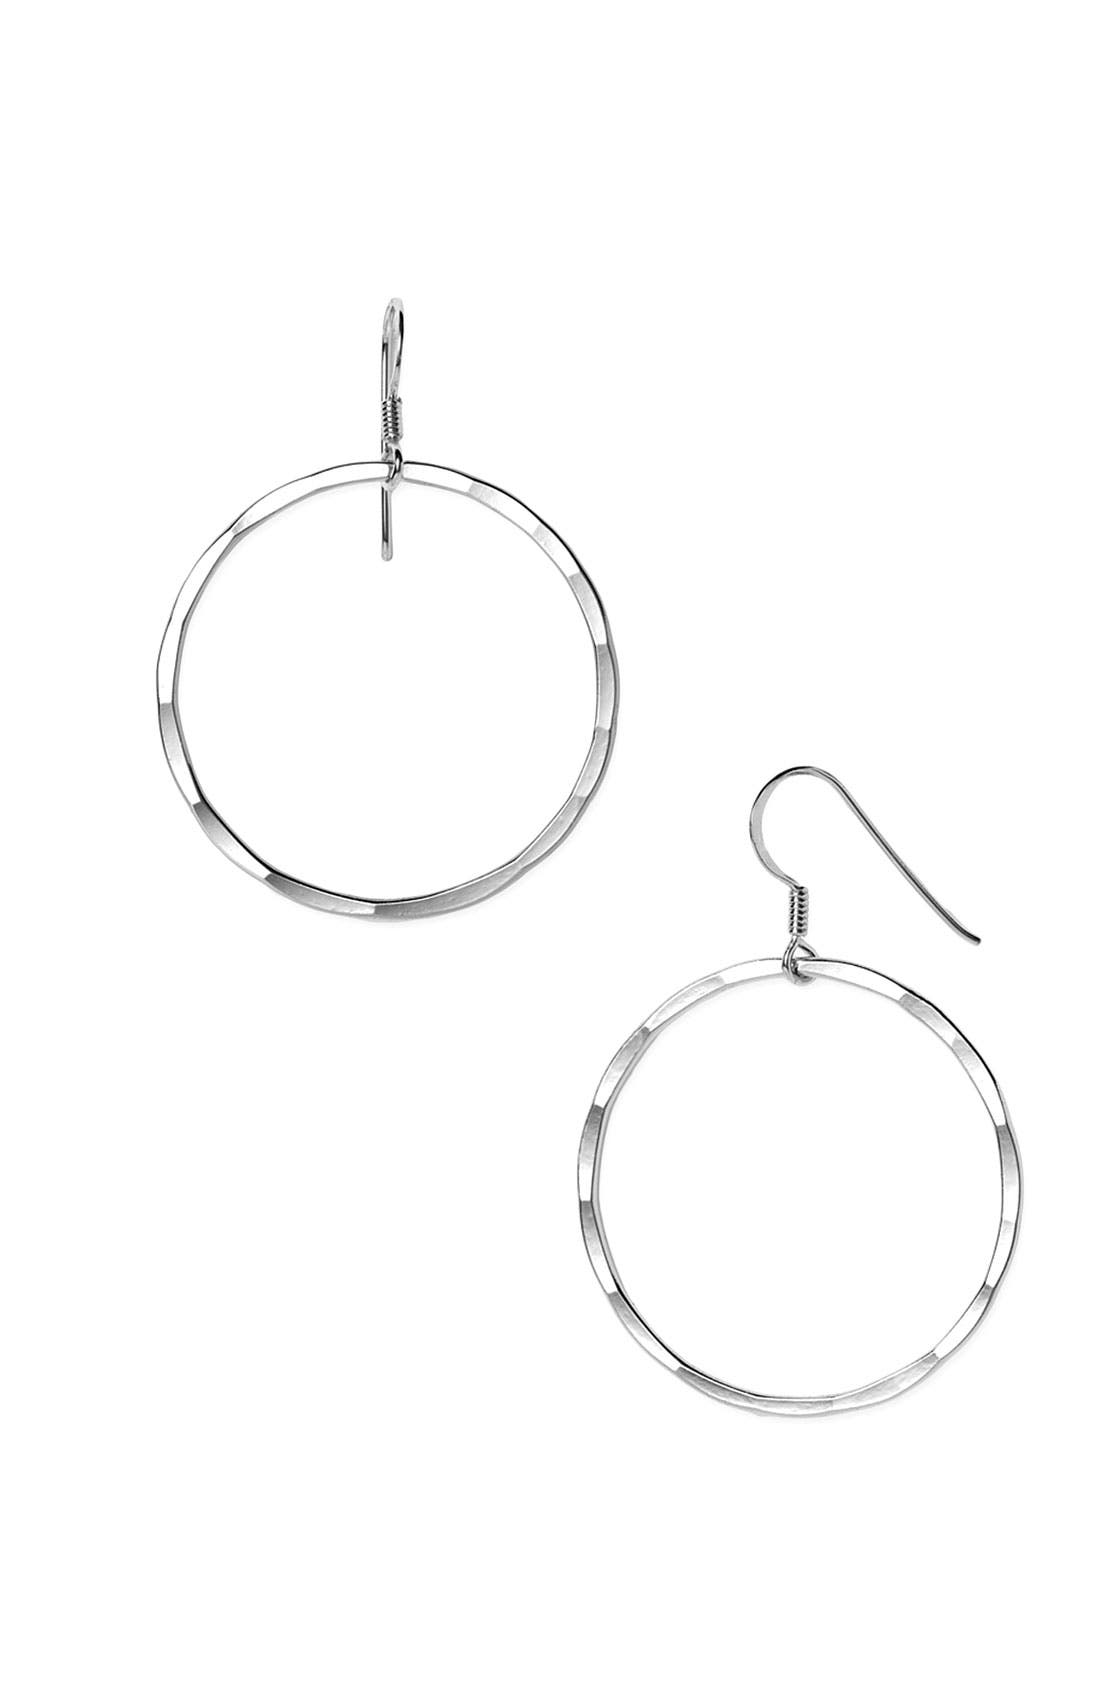 Alternate Image 1 Selected - Argento Vivo Medium Hammered Hoop Earrings